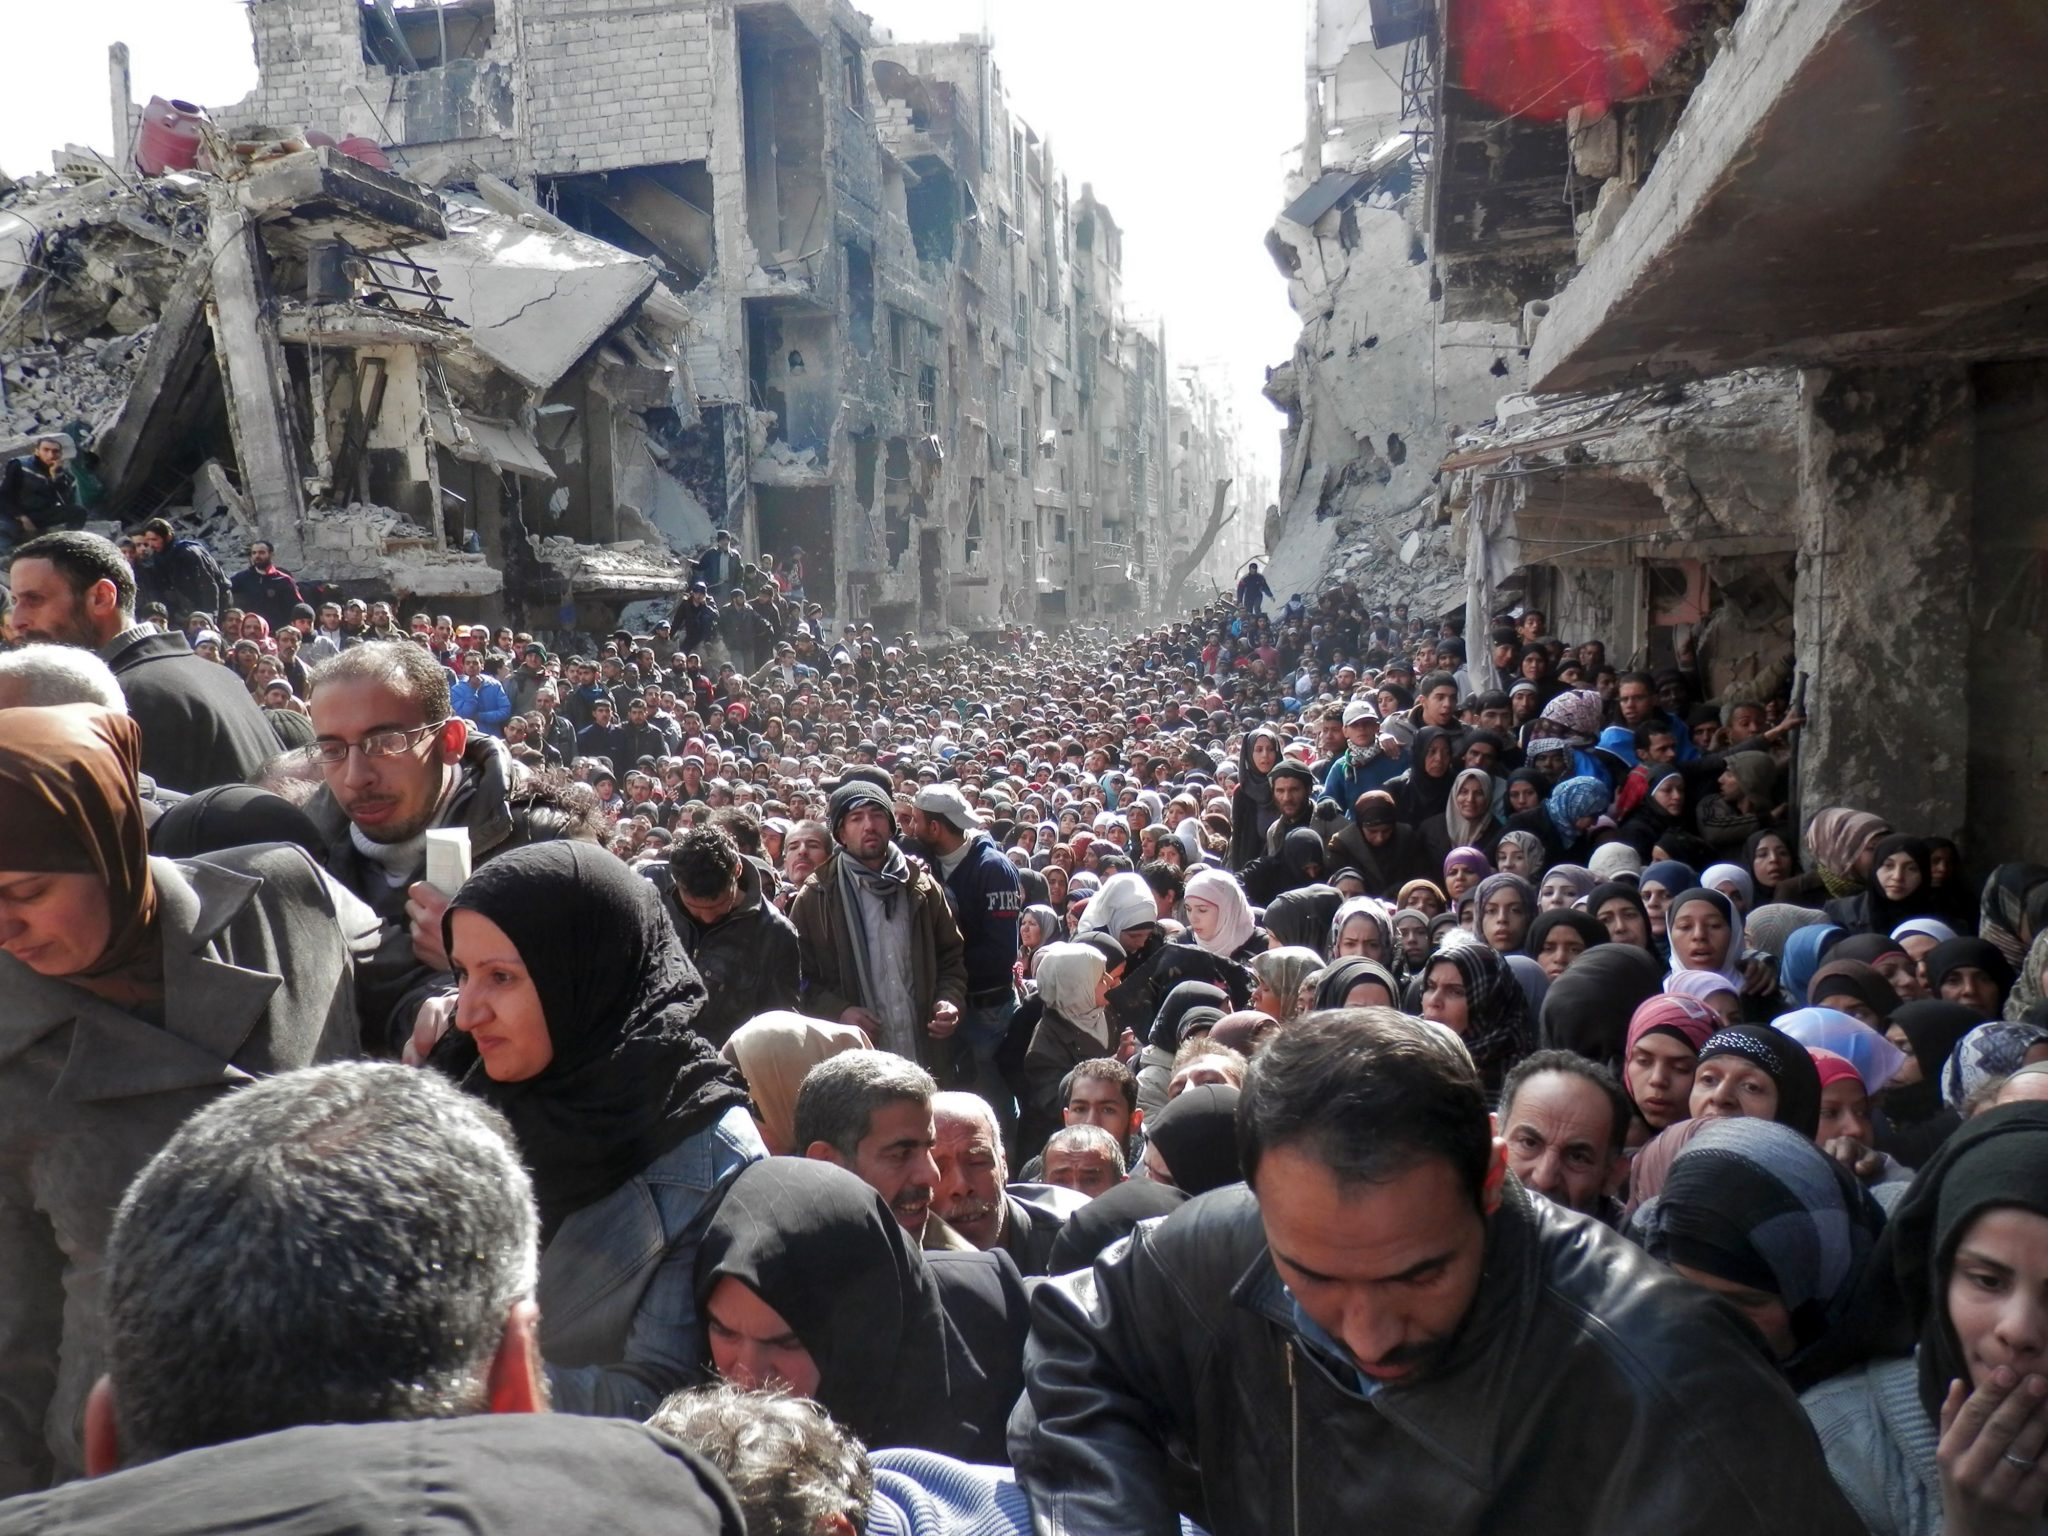 Palestinian refugees waiting for aid in the Yarmouk camp - 2014 (Getty Images)